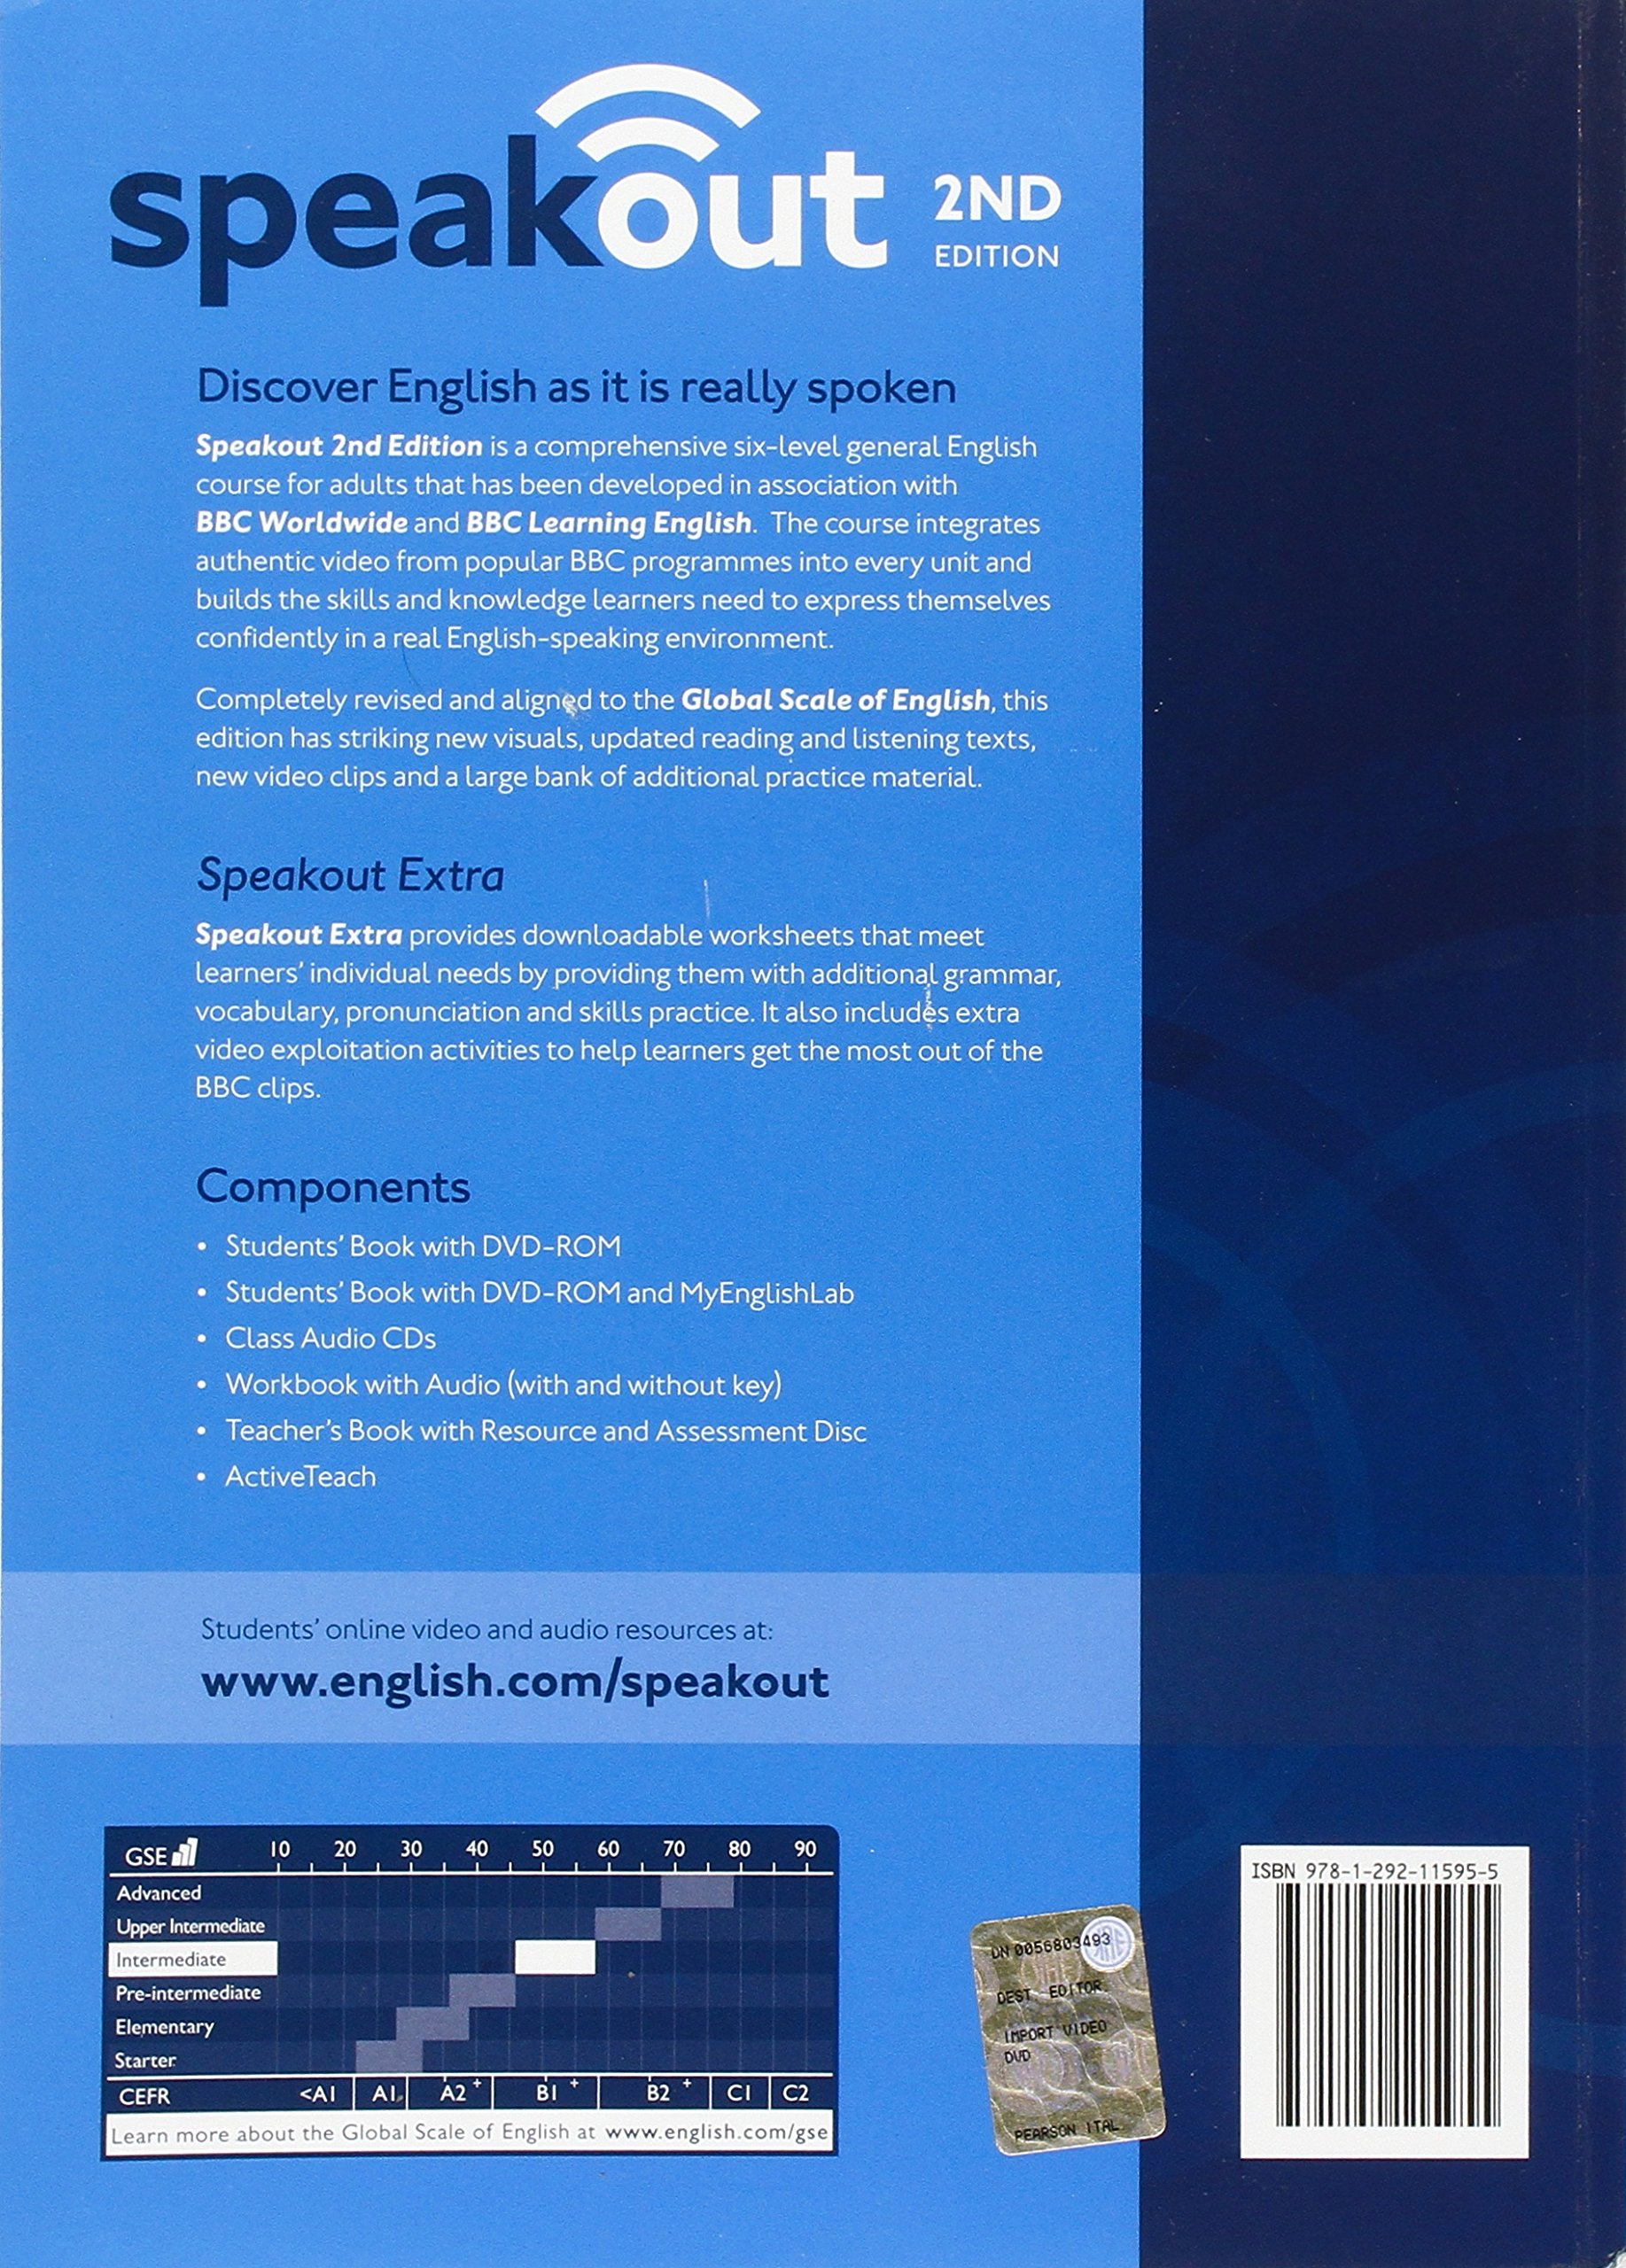 Speakout intermediate 2nd edition students book with dvd rom and speakout intermediate 2nd edition students book with dvd rom and myenglishlab access code pack livros na amazon brasil 9781292115955 fandeluxe Choice Image